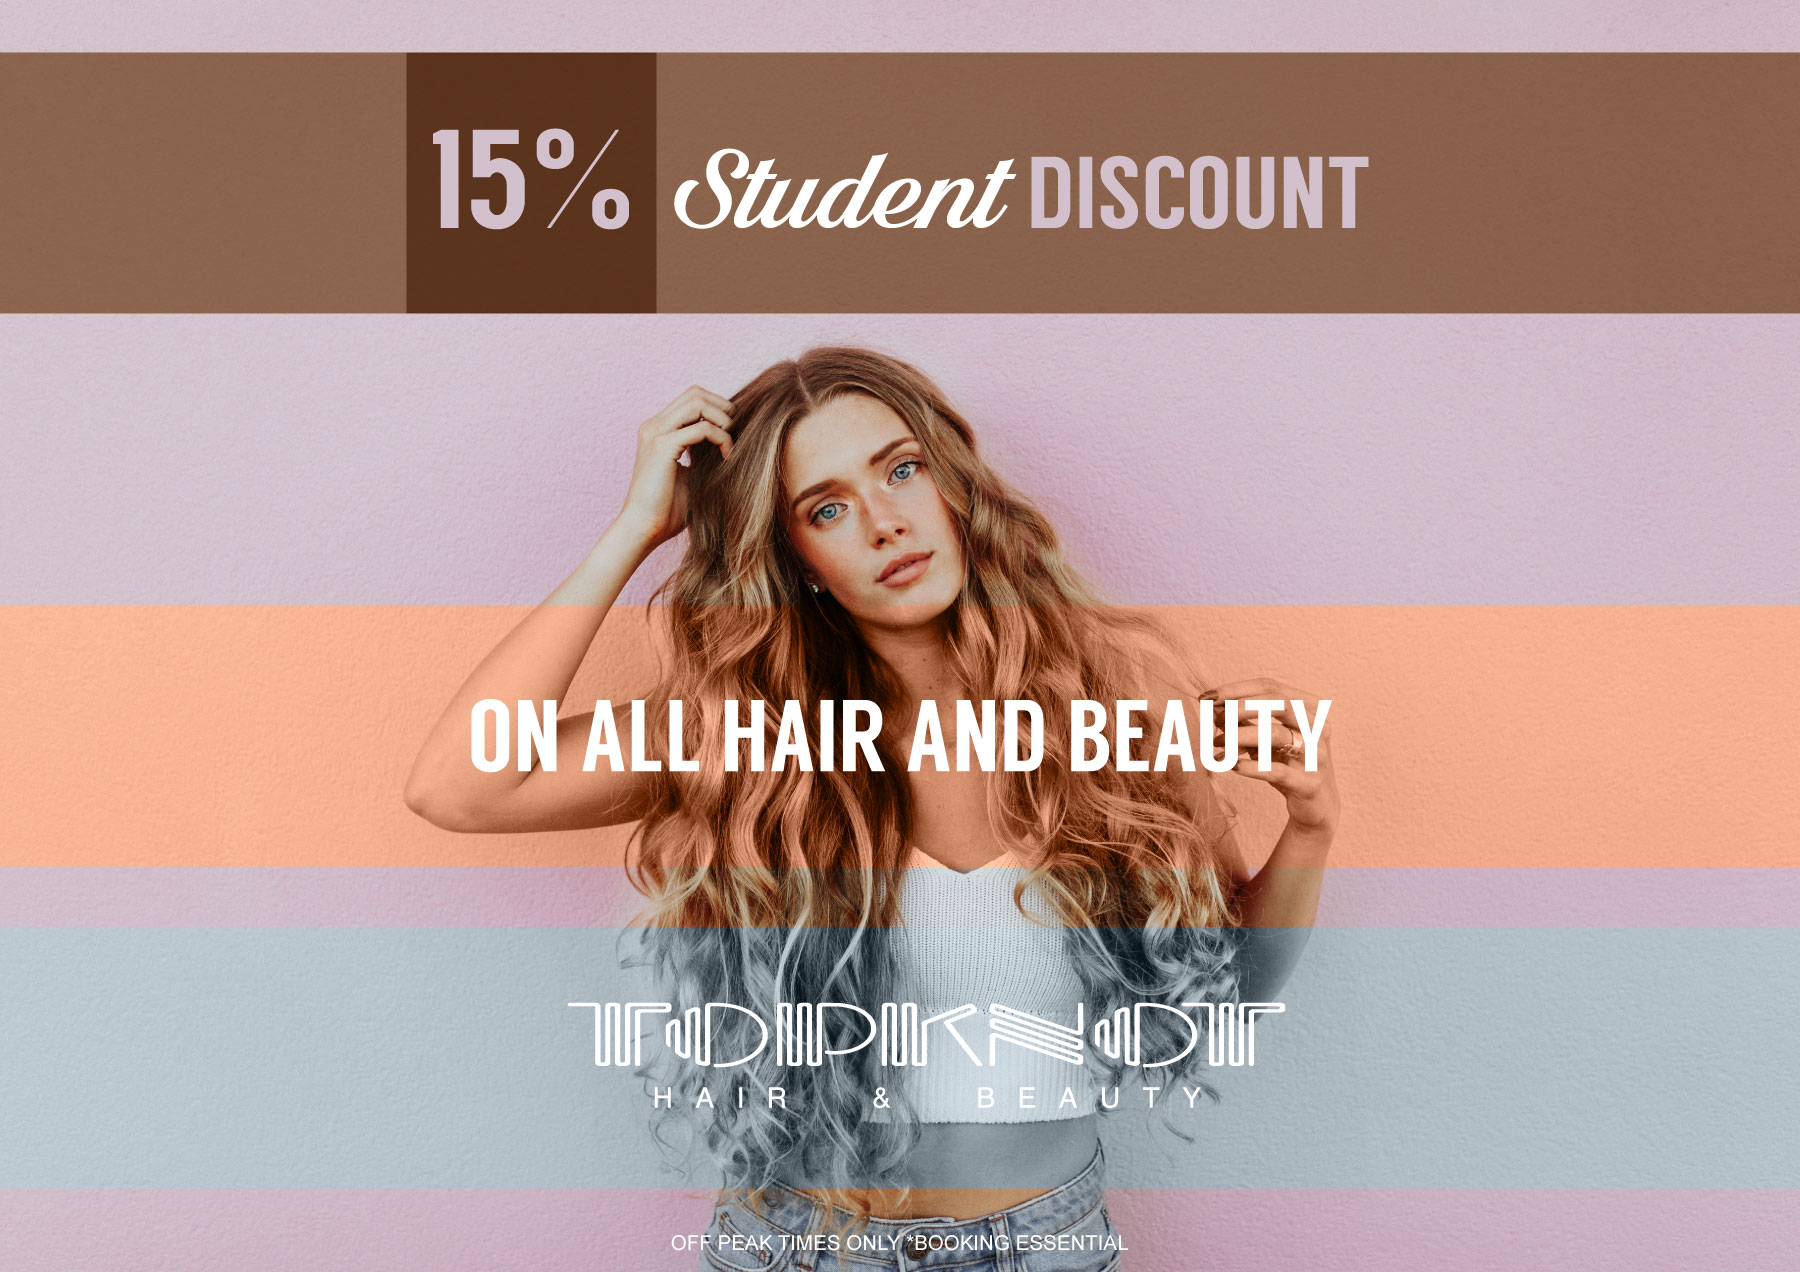 Student Discount Topknot Salon Hair and Beauty Nottingham Topknot